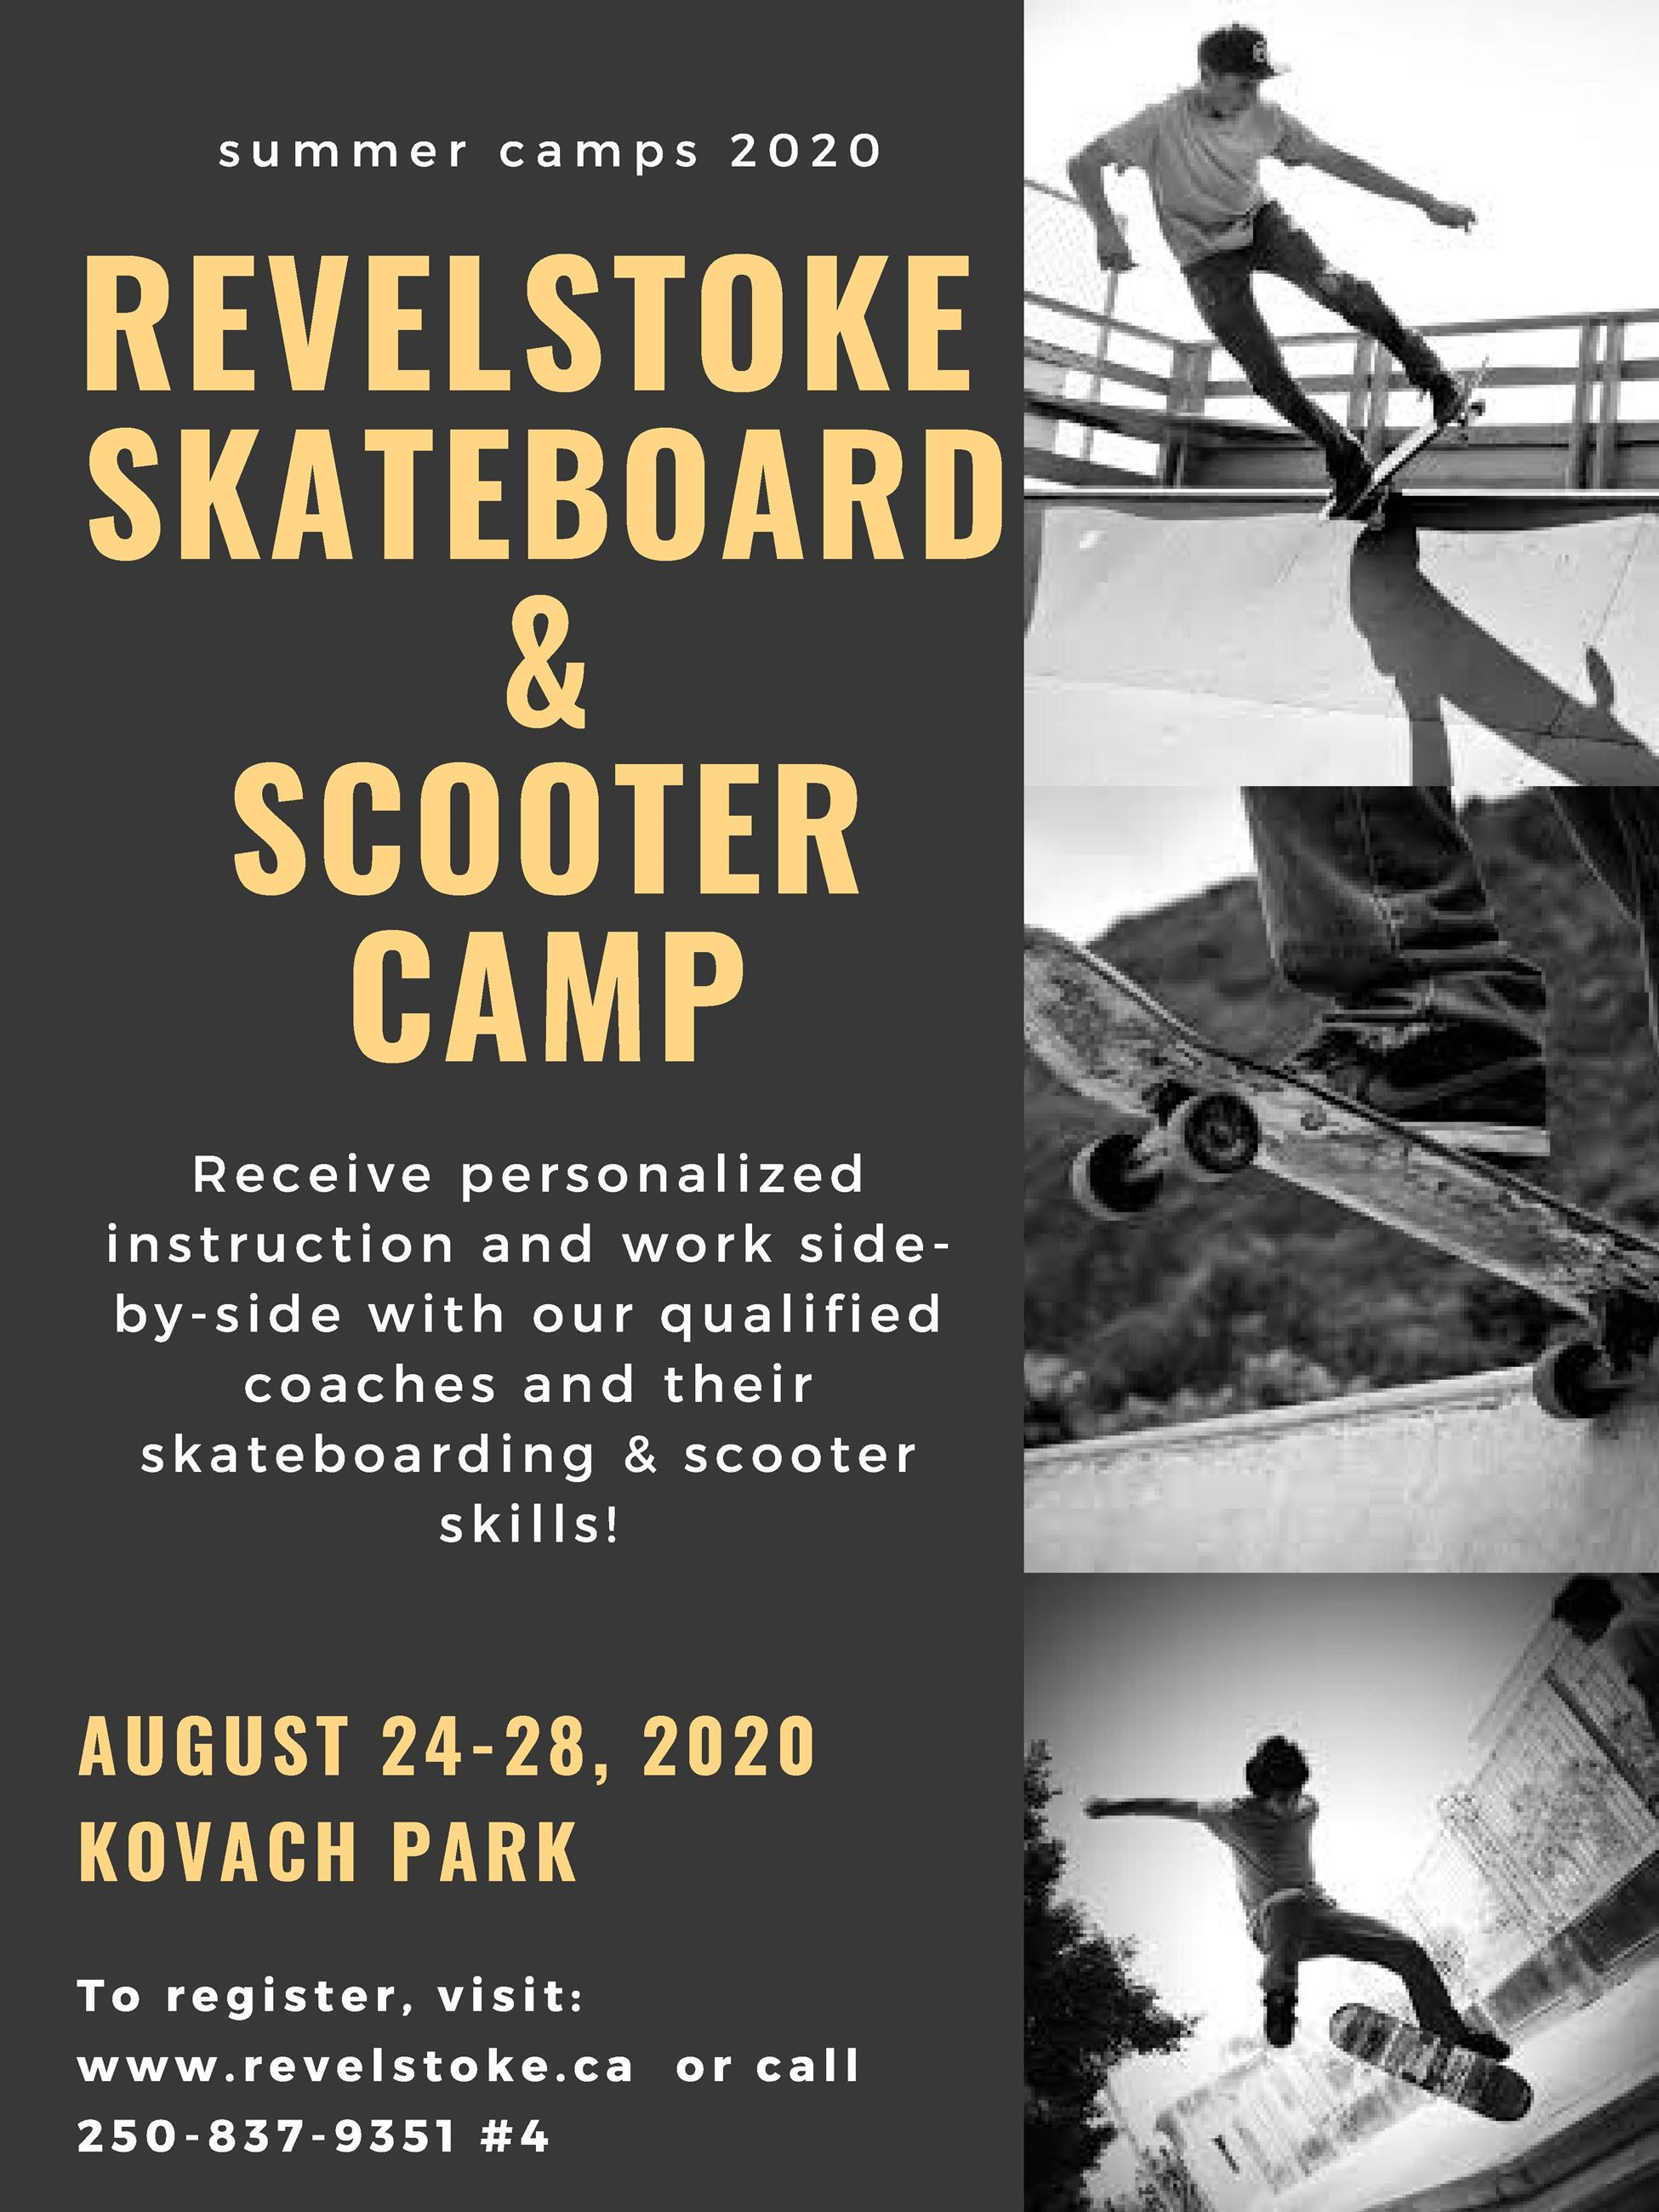 revelstoke skateboard  scooter camp